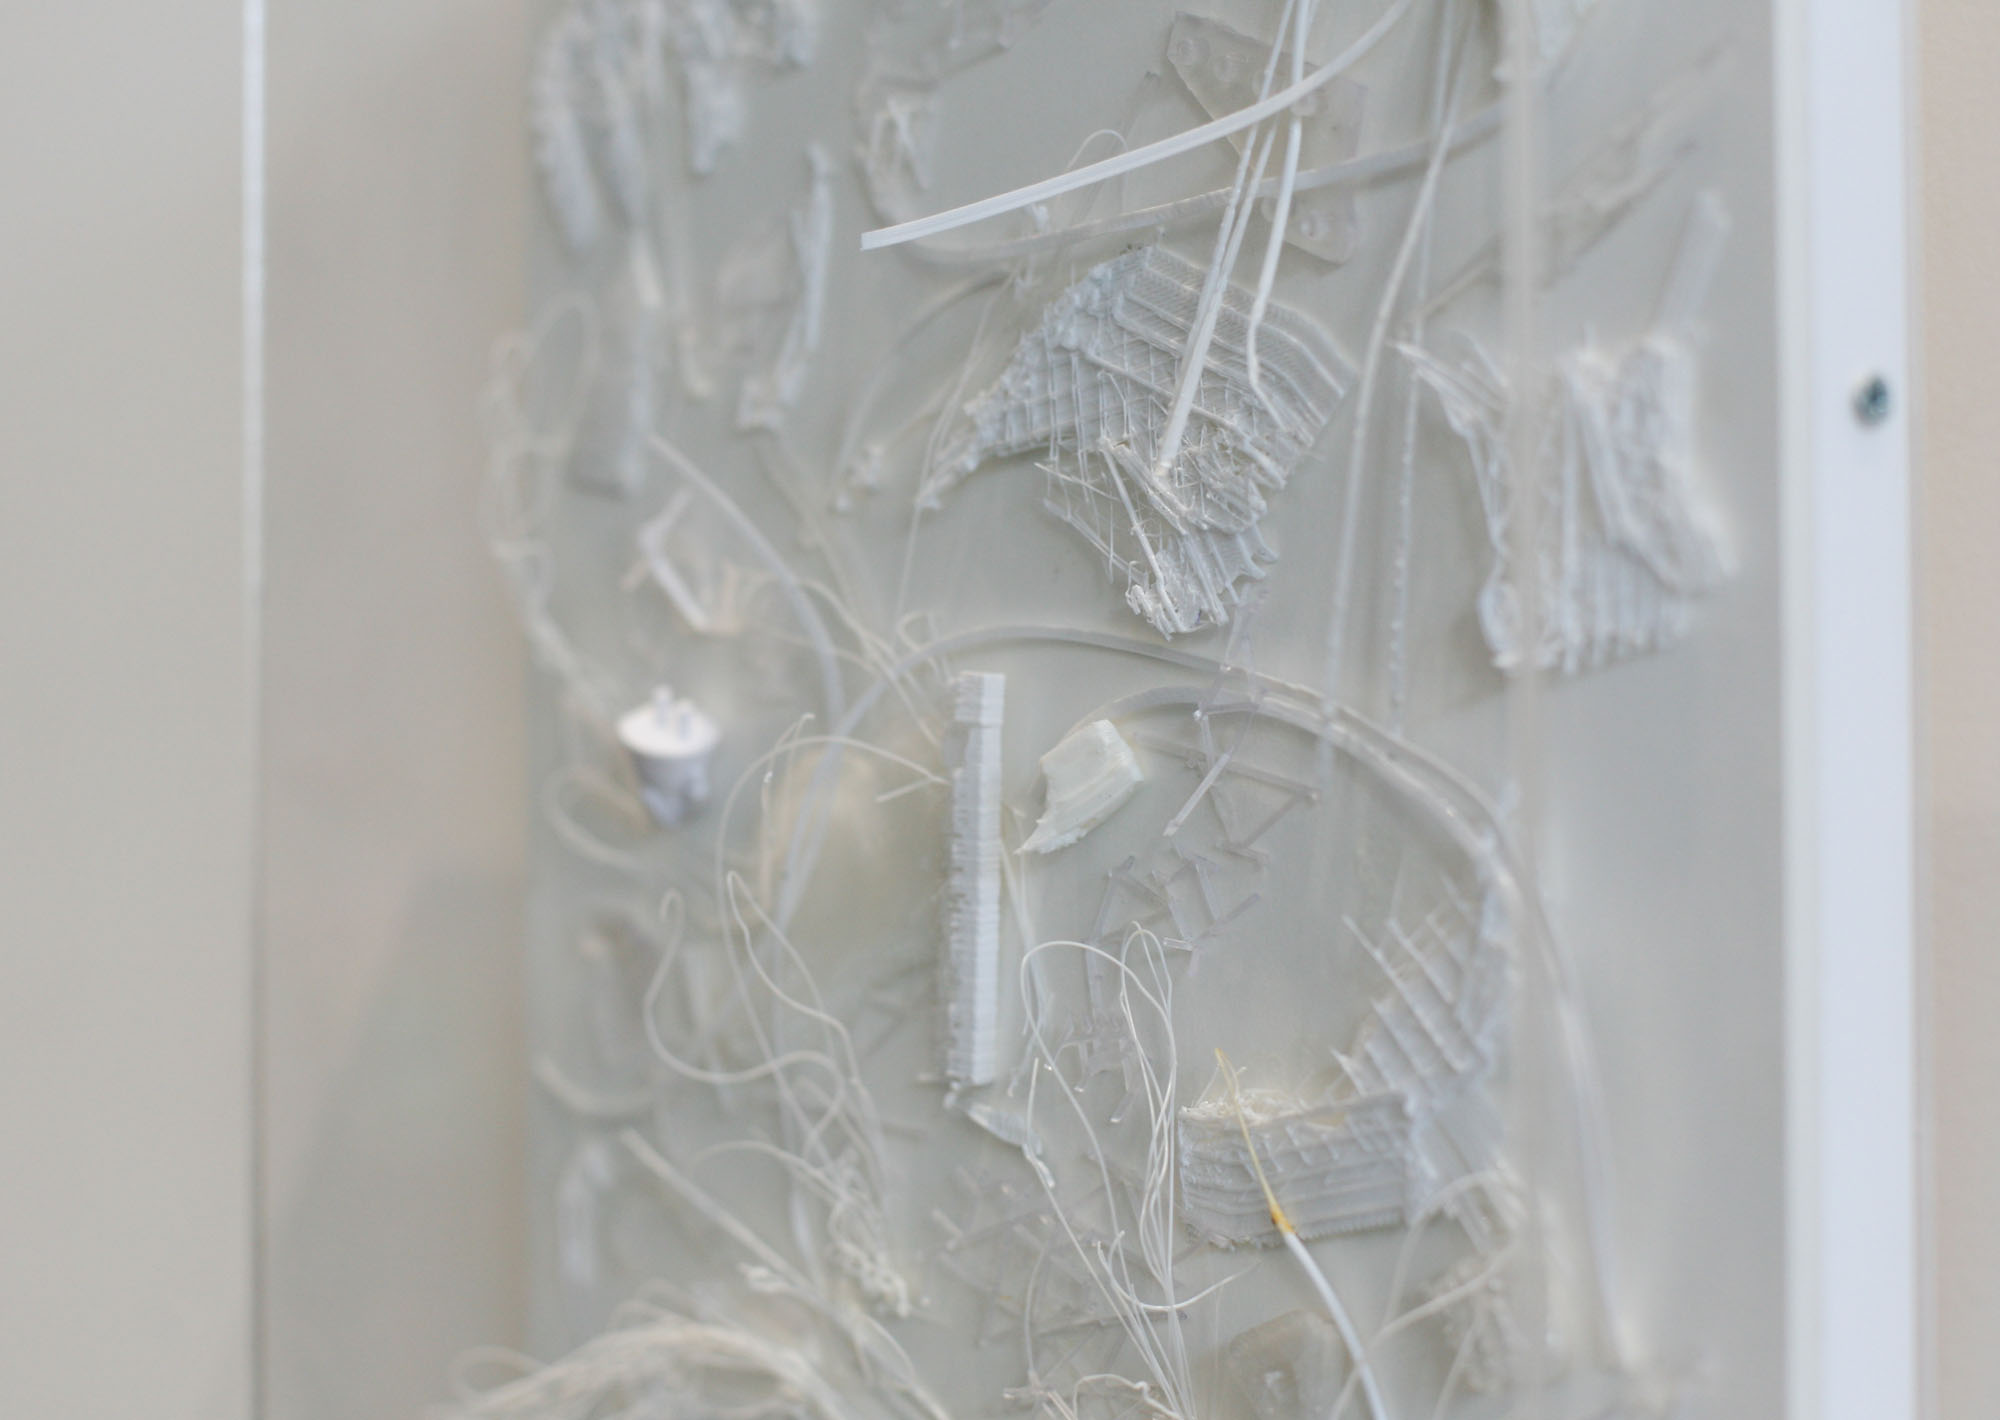 Tina Douglas, spiky 2019, 3D printed plastic errors on ragboard, 37.6 x 28.5 x 6 cm with acrylic box (detail)